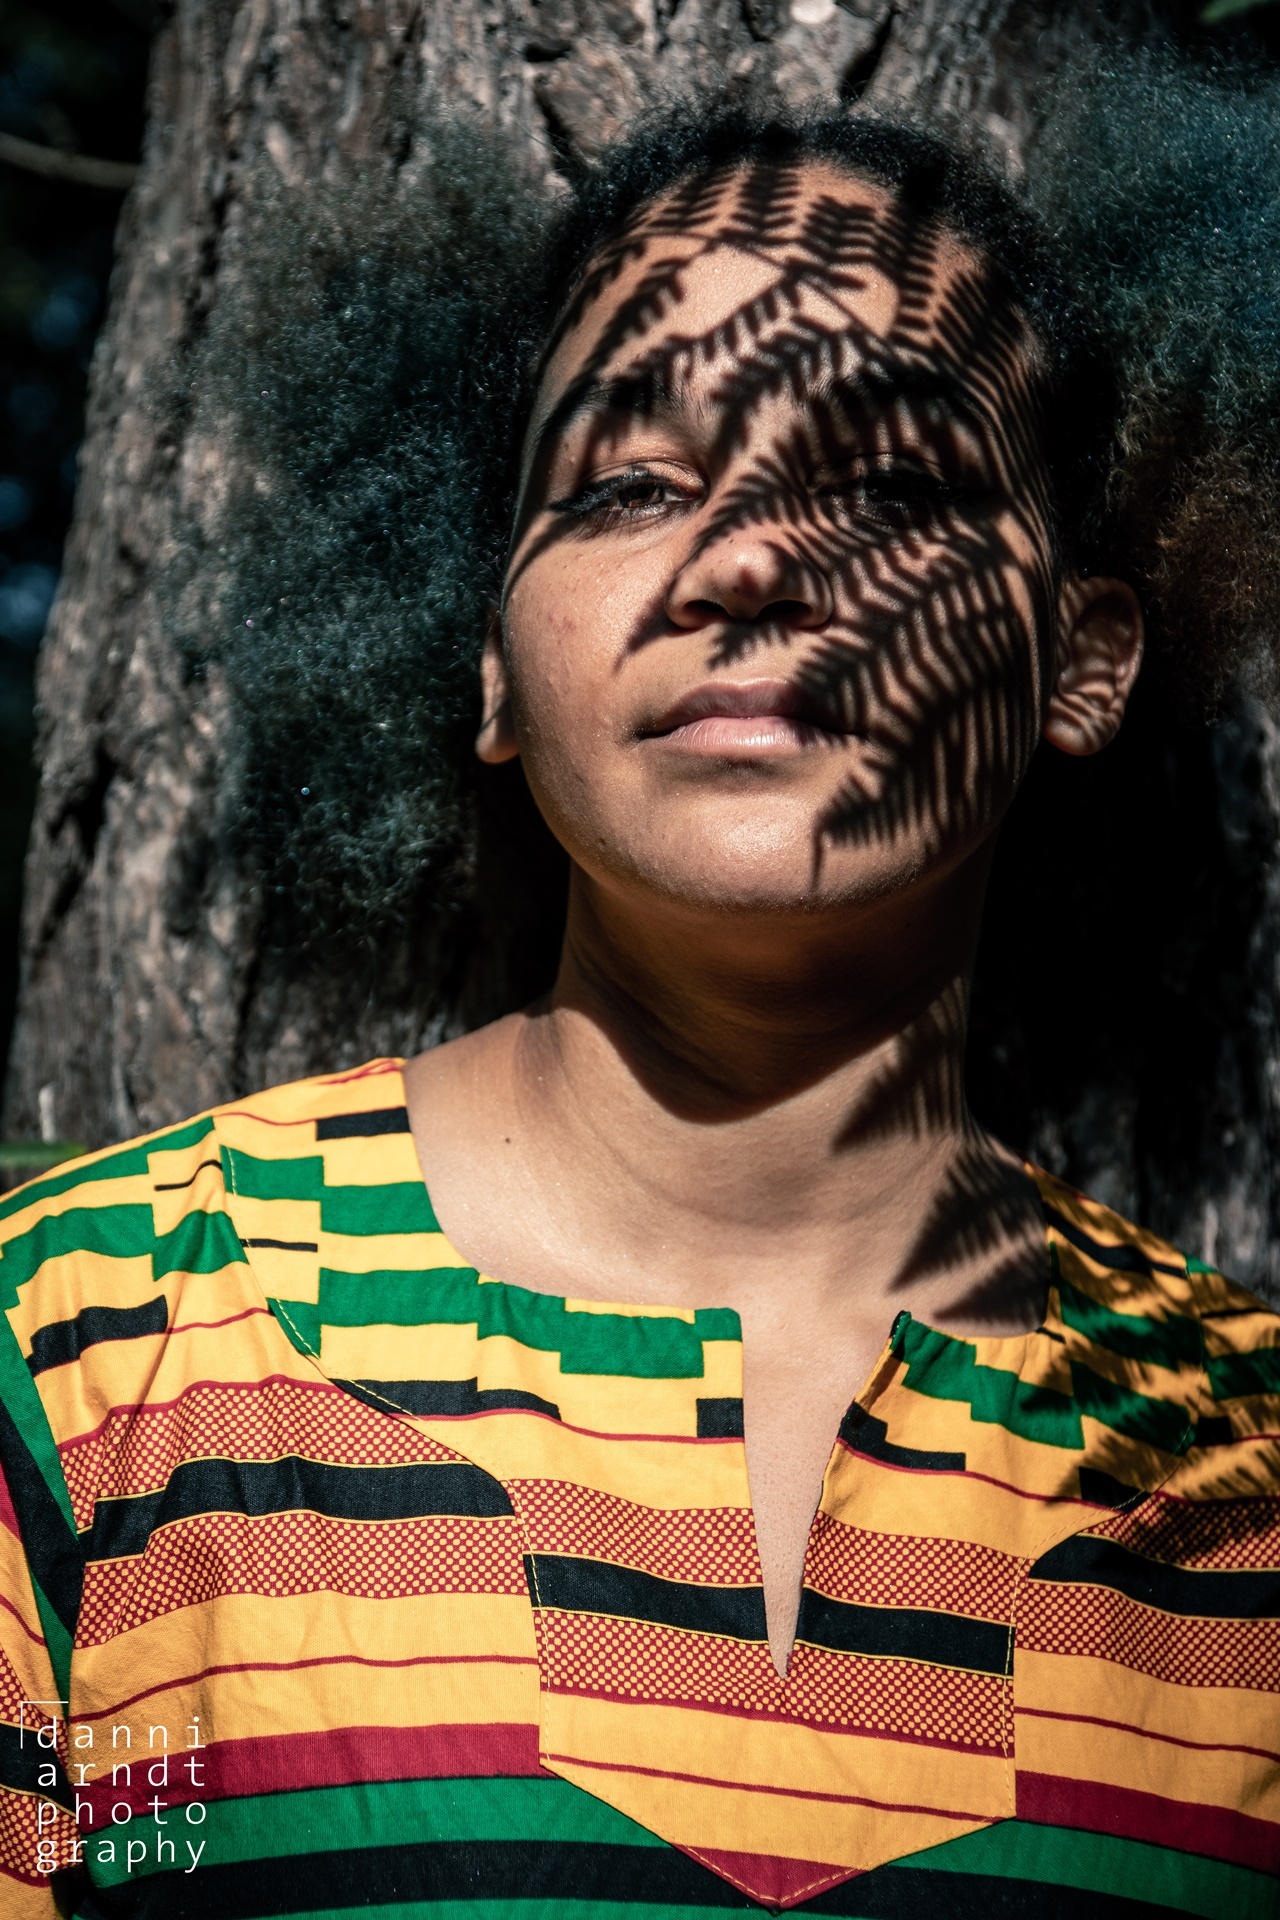 shadows of fern on an African girls face